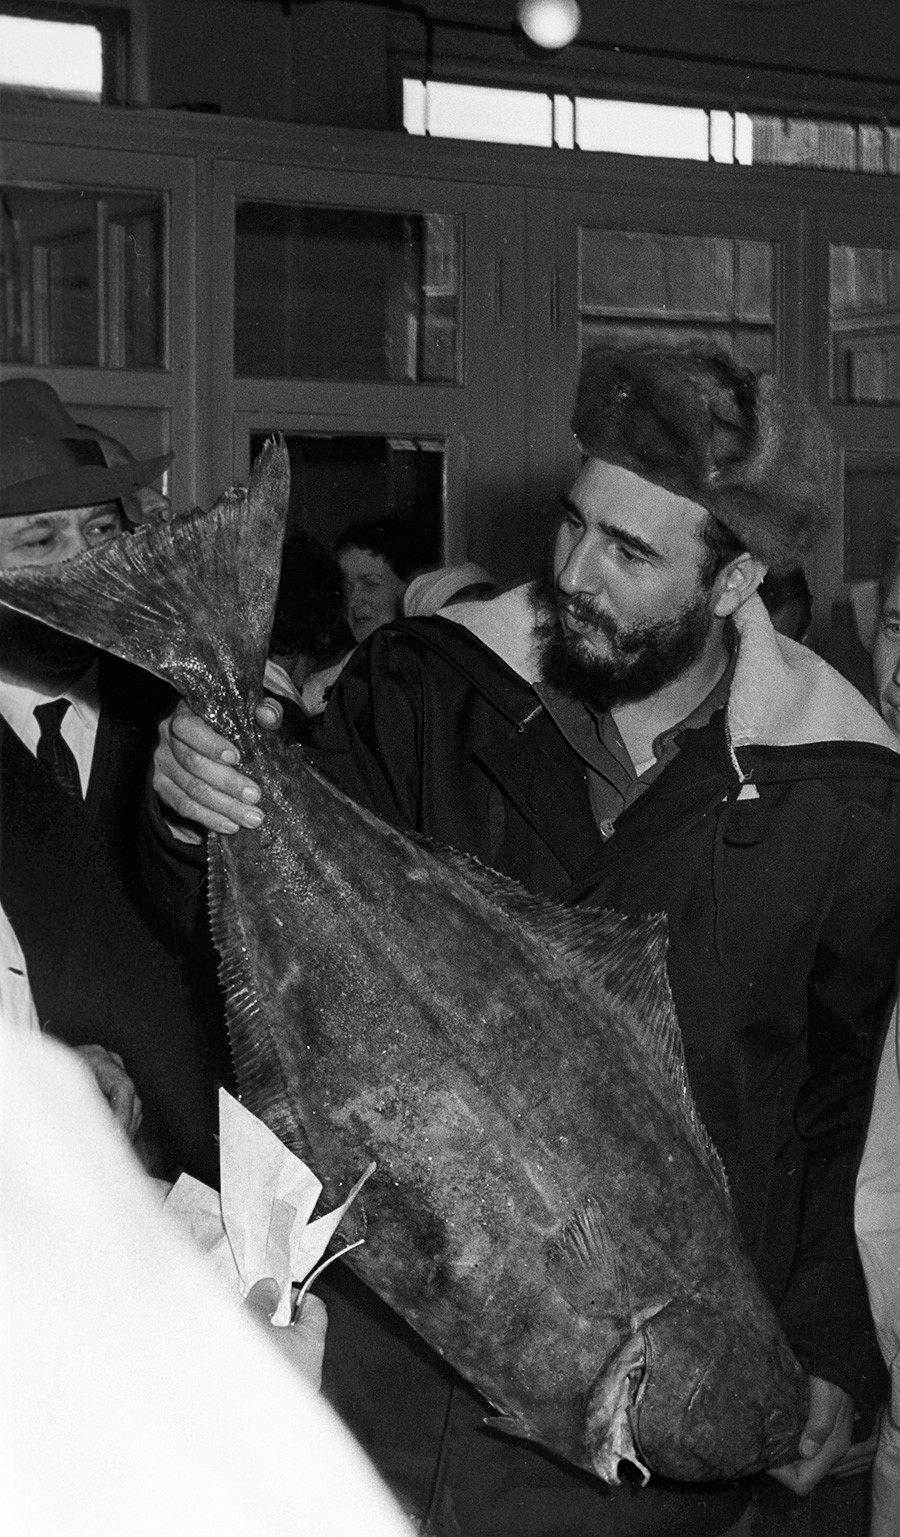 Chairman of the State Council and Council of Ministers of the Republic of Cuba, leader of the Cuban revolution Fidel Castro visits a fish factory in Murmansk, USSR